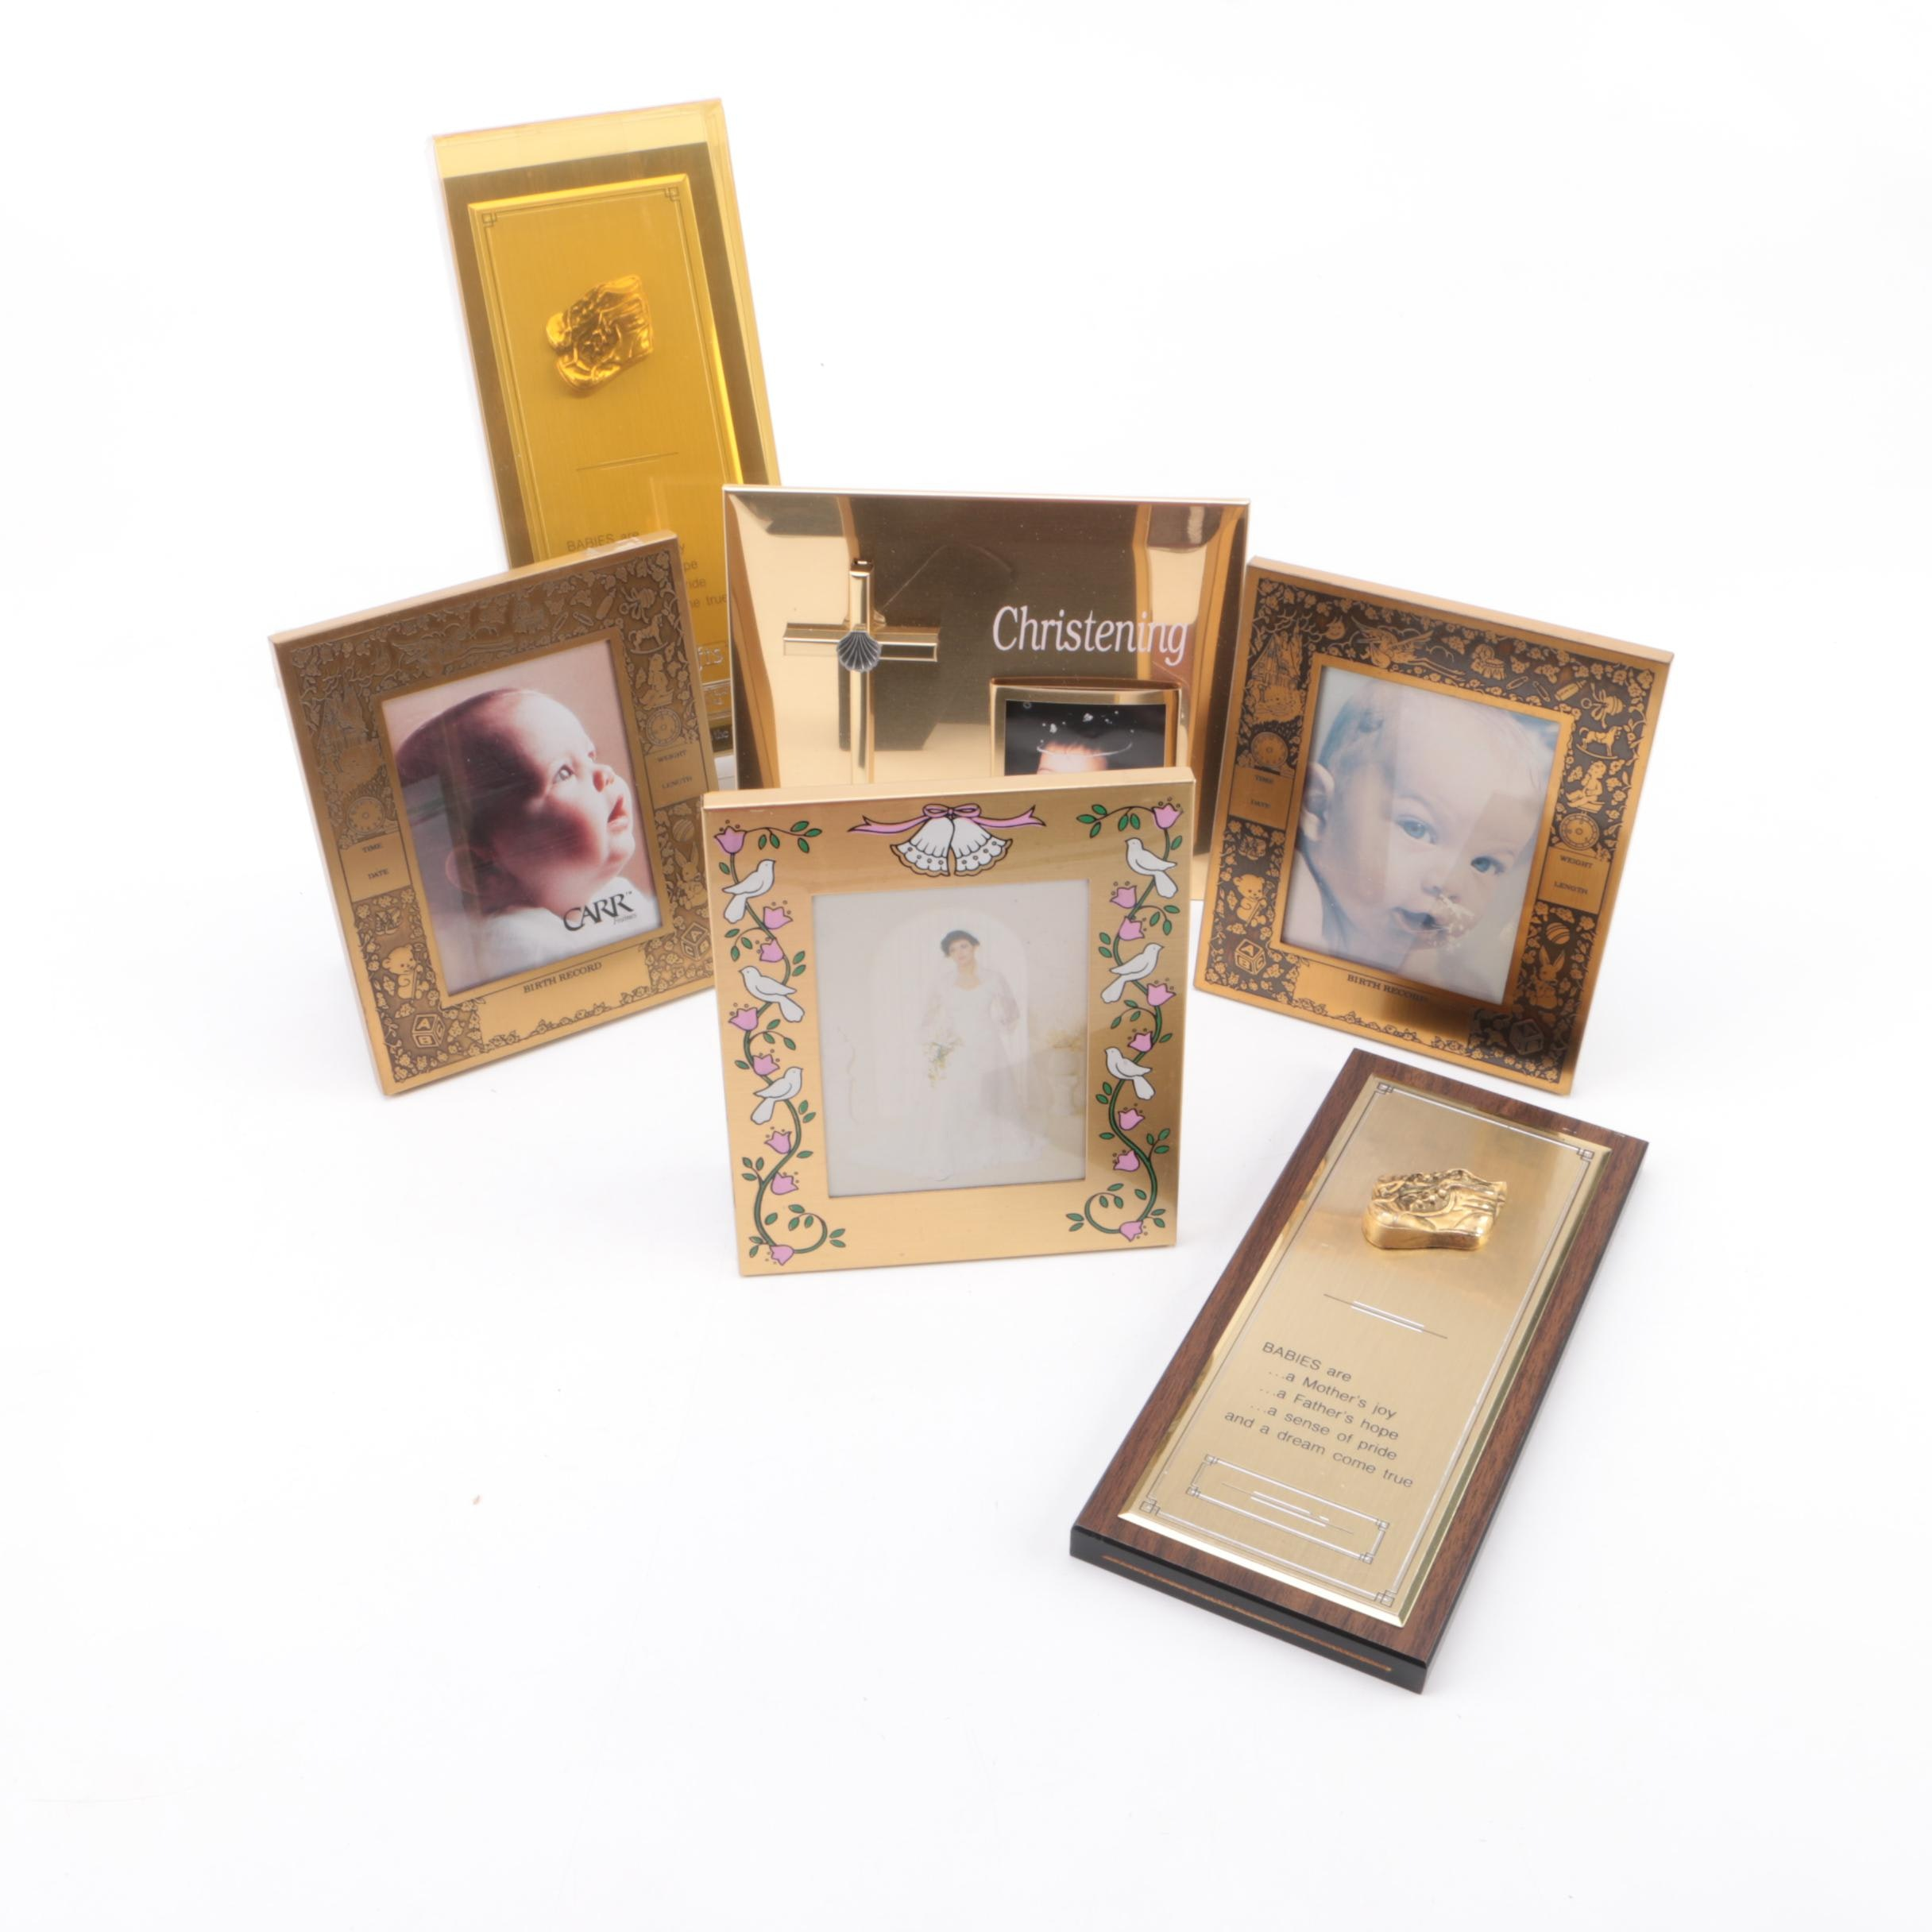 Baby, Wedding, and Christening Themed Photo Albums and Frames